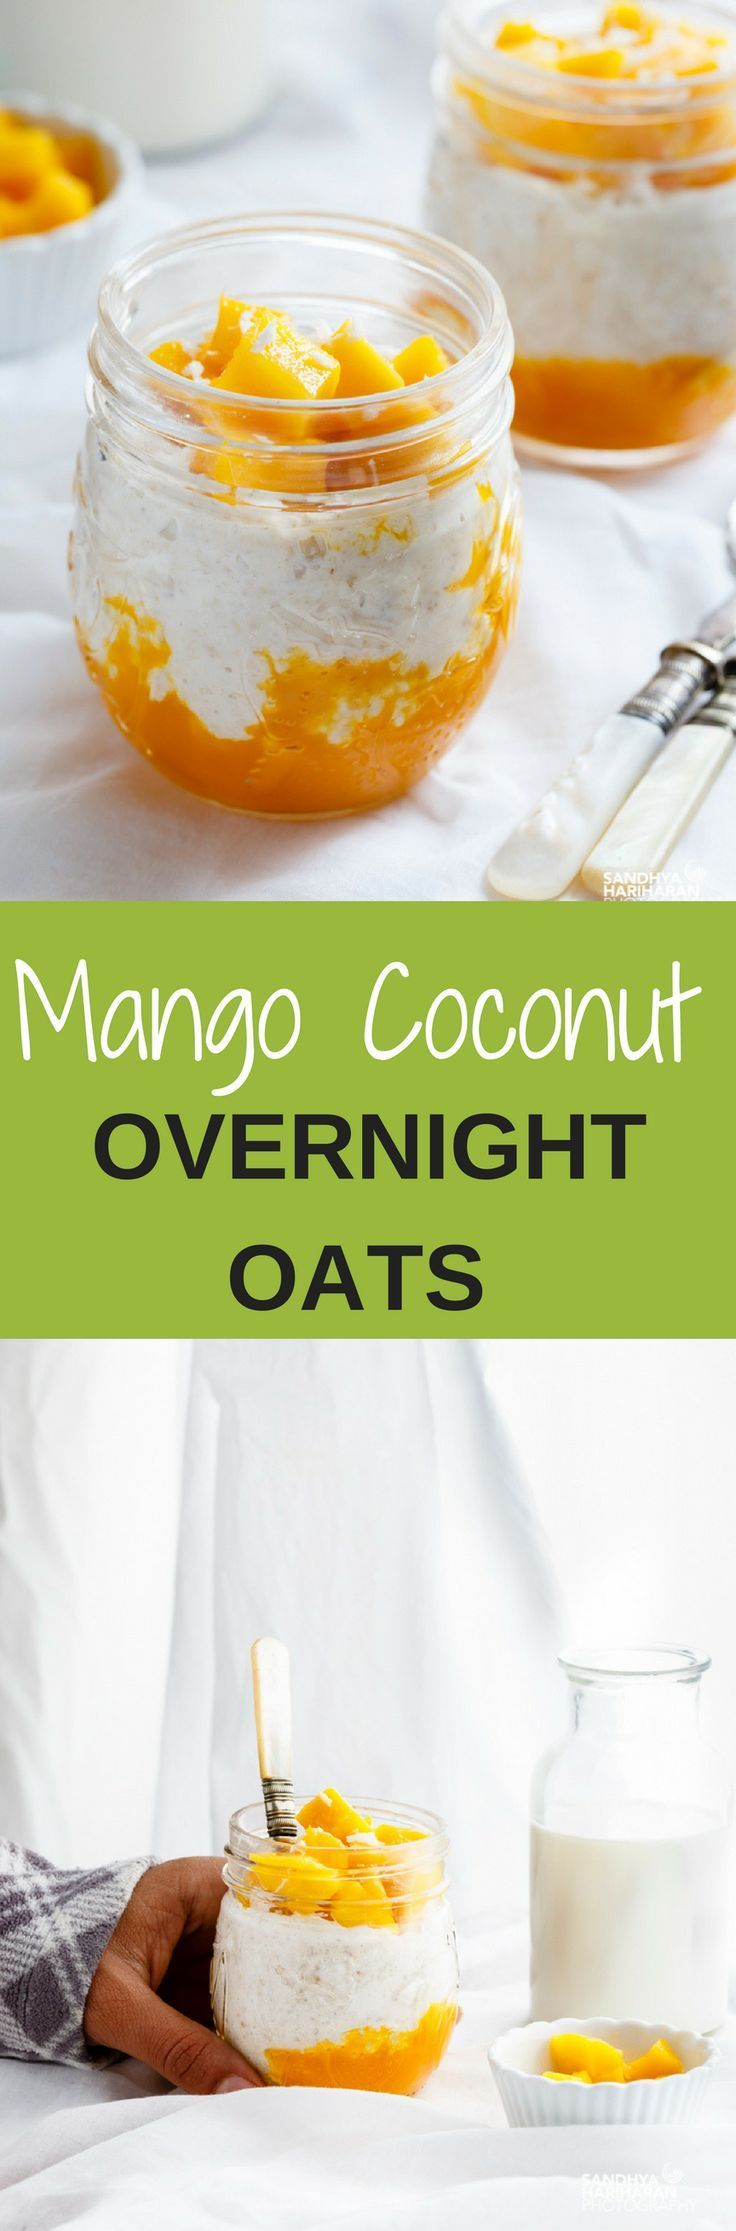 If you have Got 5 Minutes with you, These MANGO COCONUT OVERNIGHT loaded with Tropical flavours can make your deliciously easy breakfast on-the-go!